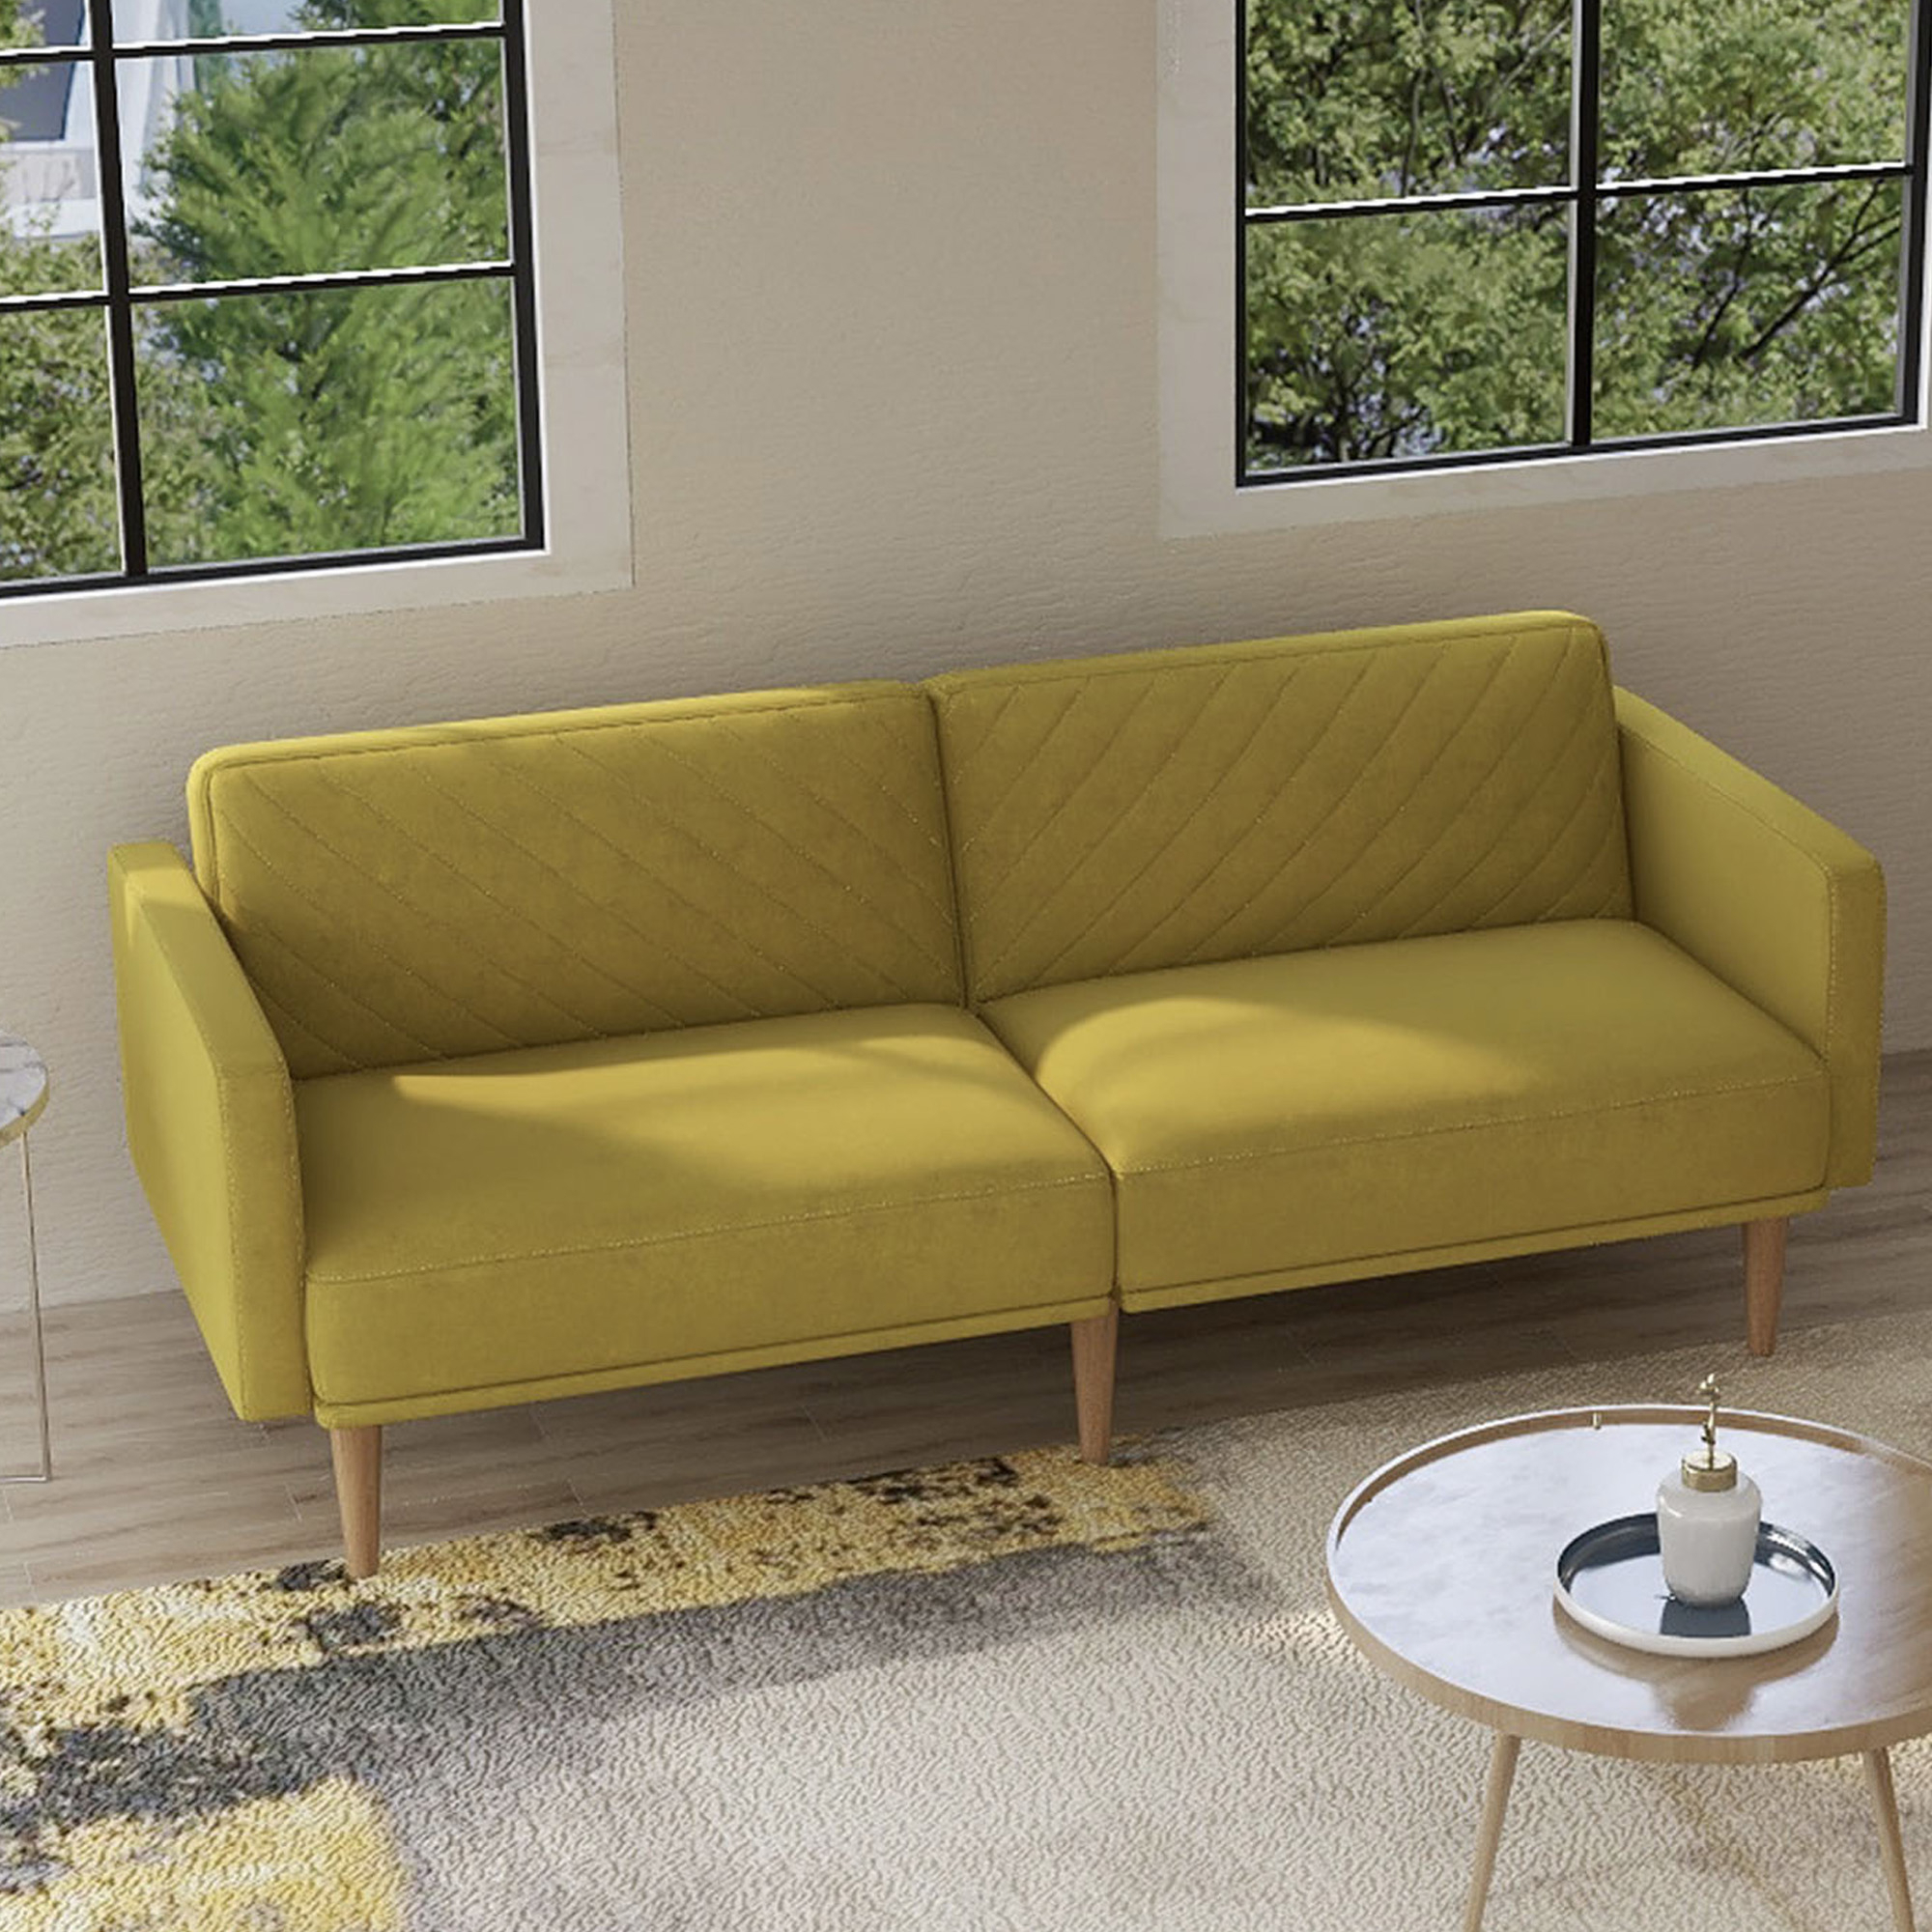 Mireille Modern And Contemporary Fabric Upholstered Sectional Sofas Inside Best And Newest Velvet Fabric Sofa Beds, Urhomepro Mid Century Modern (View 5 of 20)